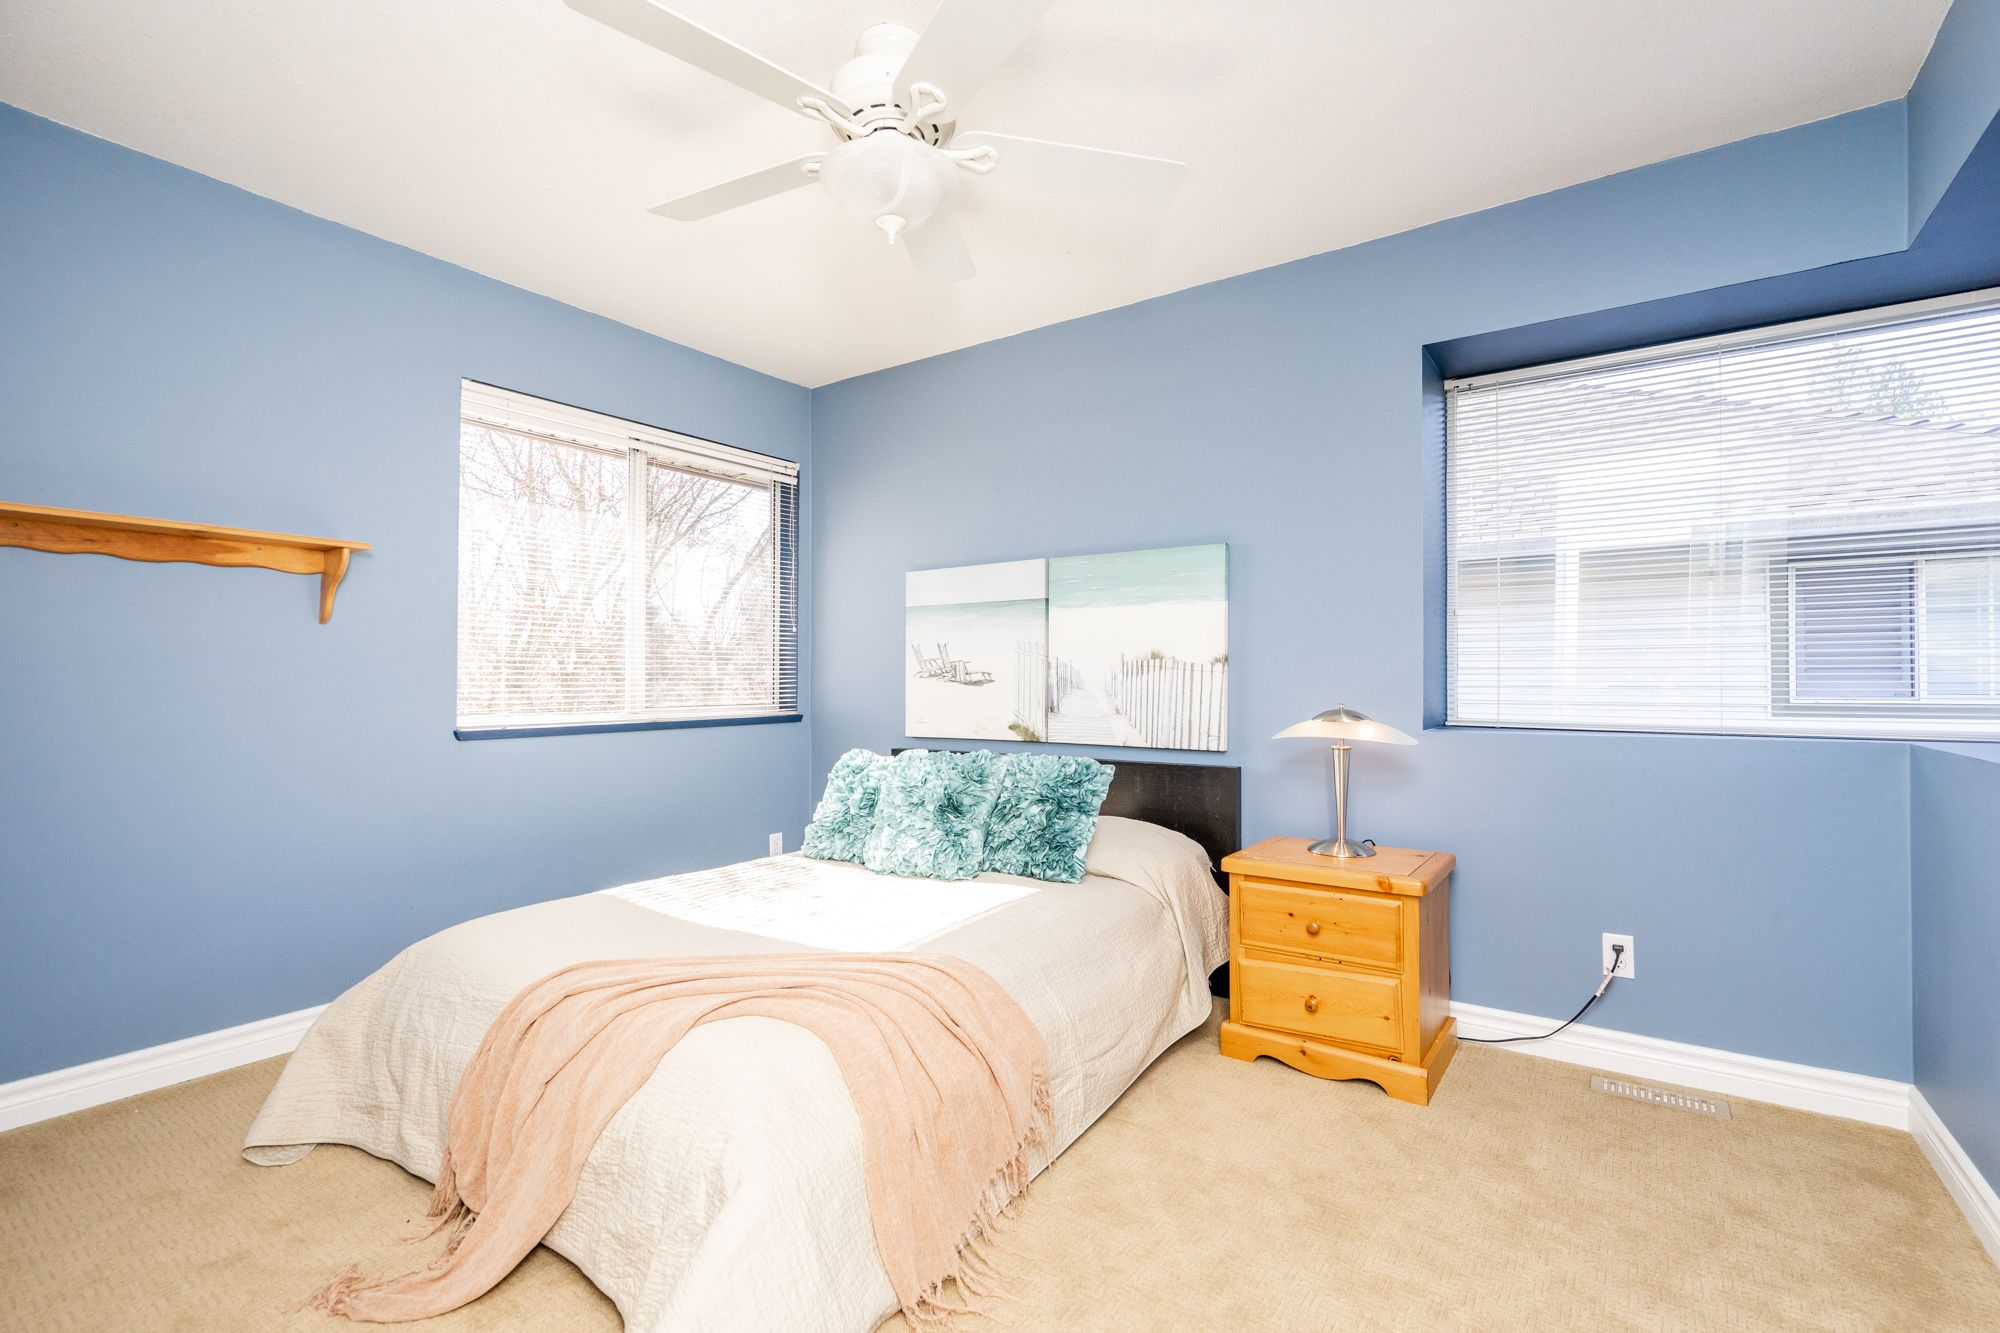 """Photo 24: Photos: 8448 213 Street in Langley: Walnut Grove House for sale in """"Forest Hills"""" : MLS®# R2259409"""